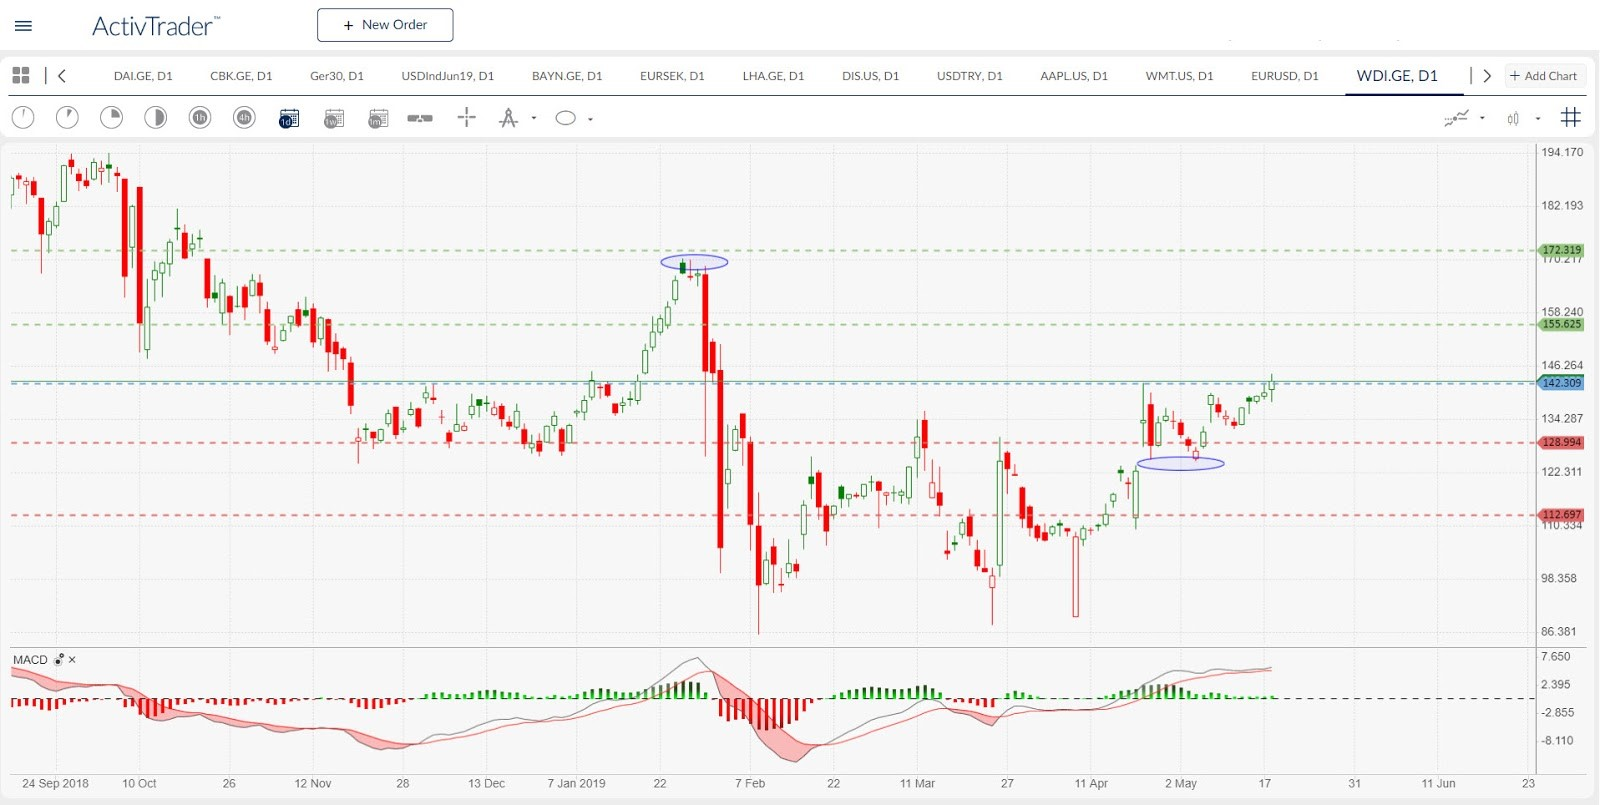 WDI.GE - daily chart. Source: ActivTrader